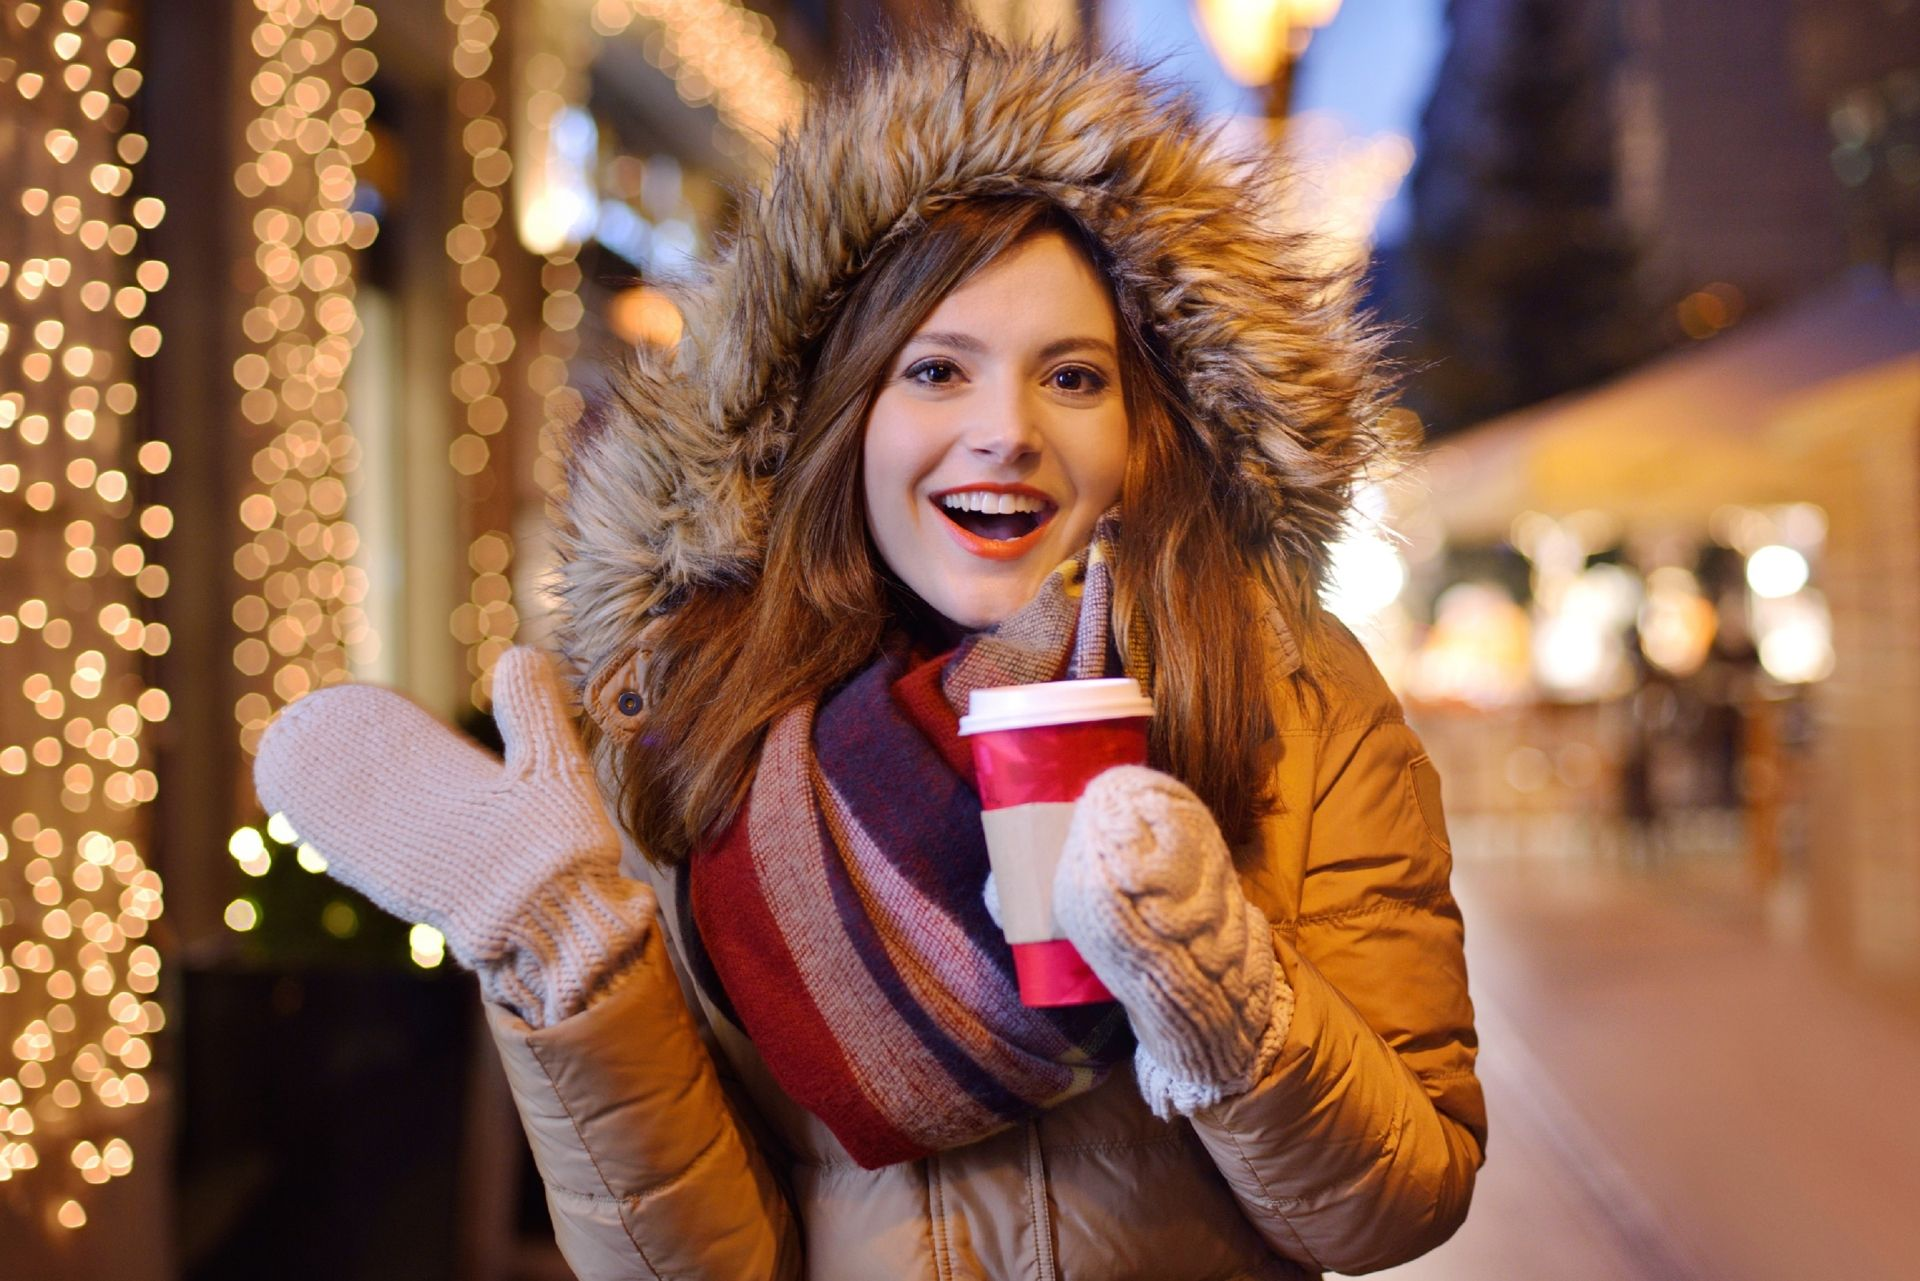 Young woman drinking coffee / tea in a Christmas fare.